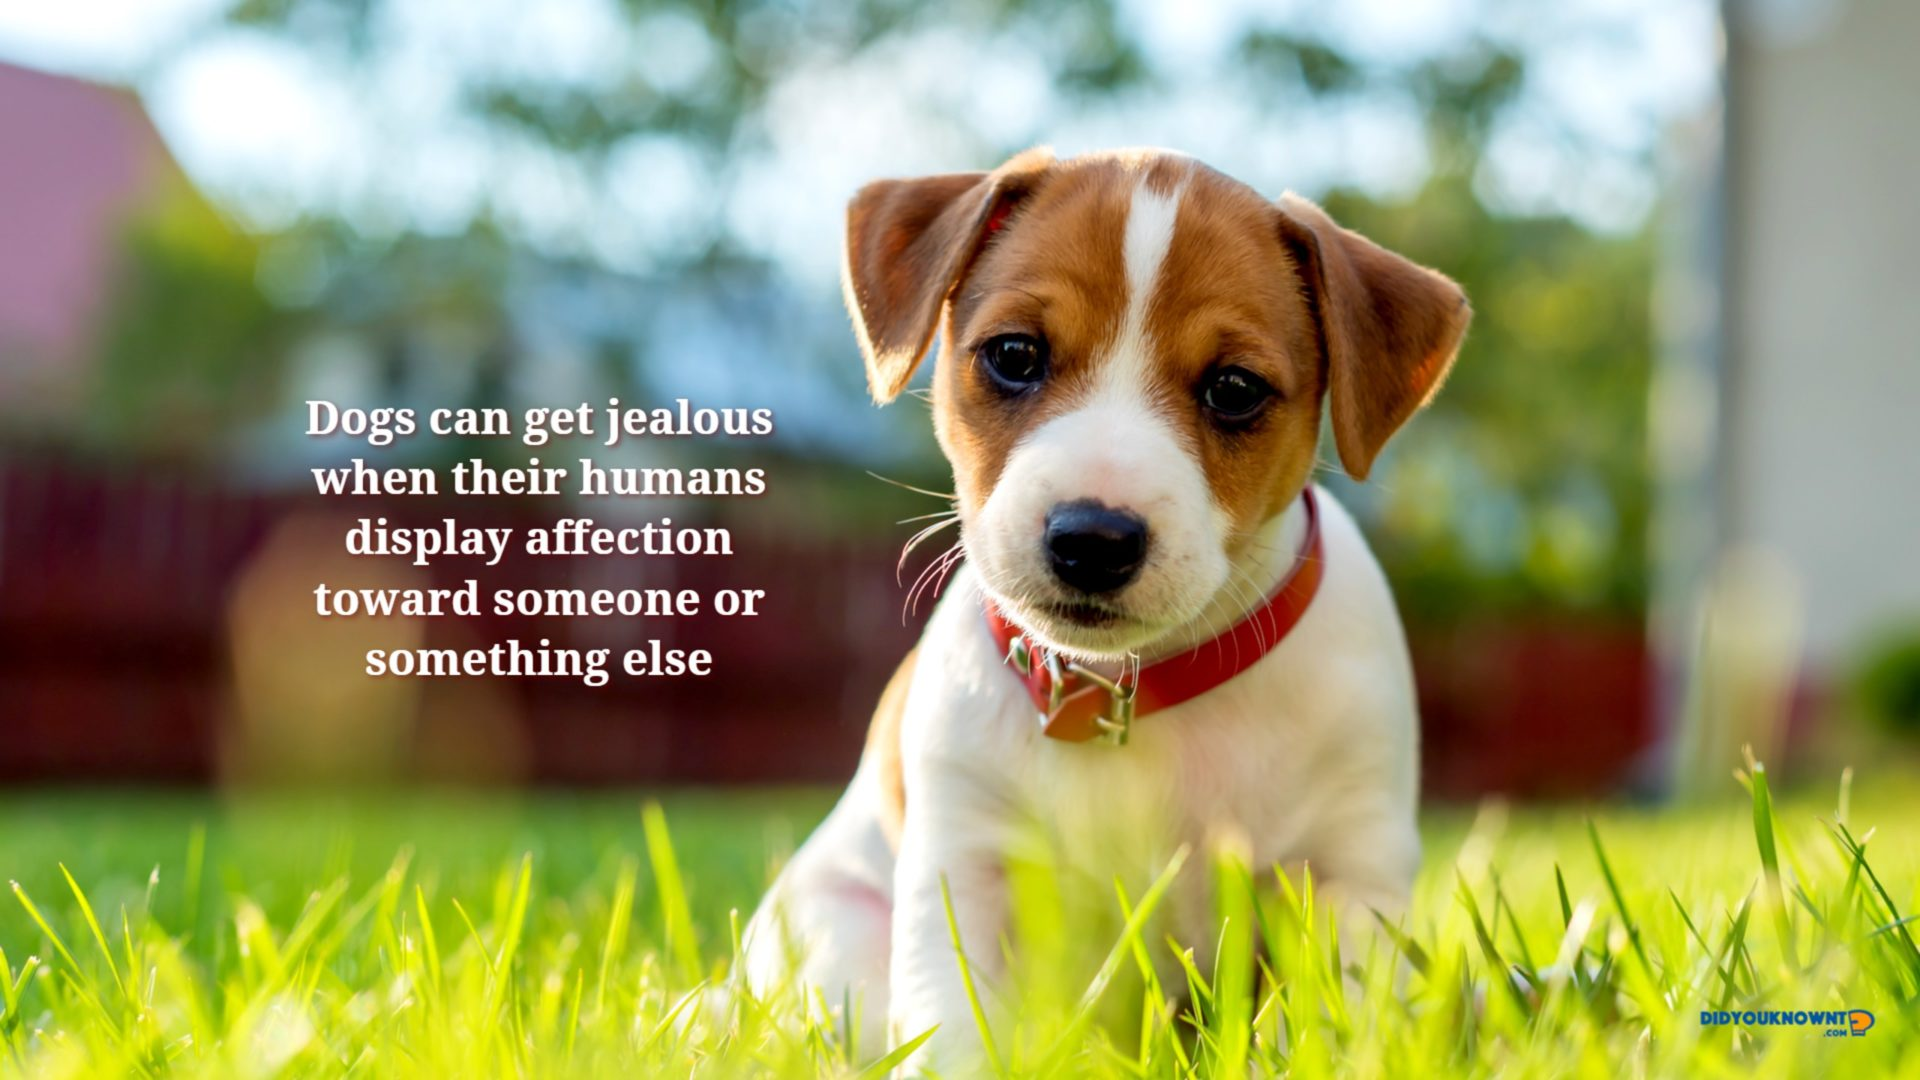 Did You Know Dogs HD Wallpaper New Tab   Did You Know 1920x1080